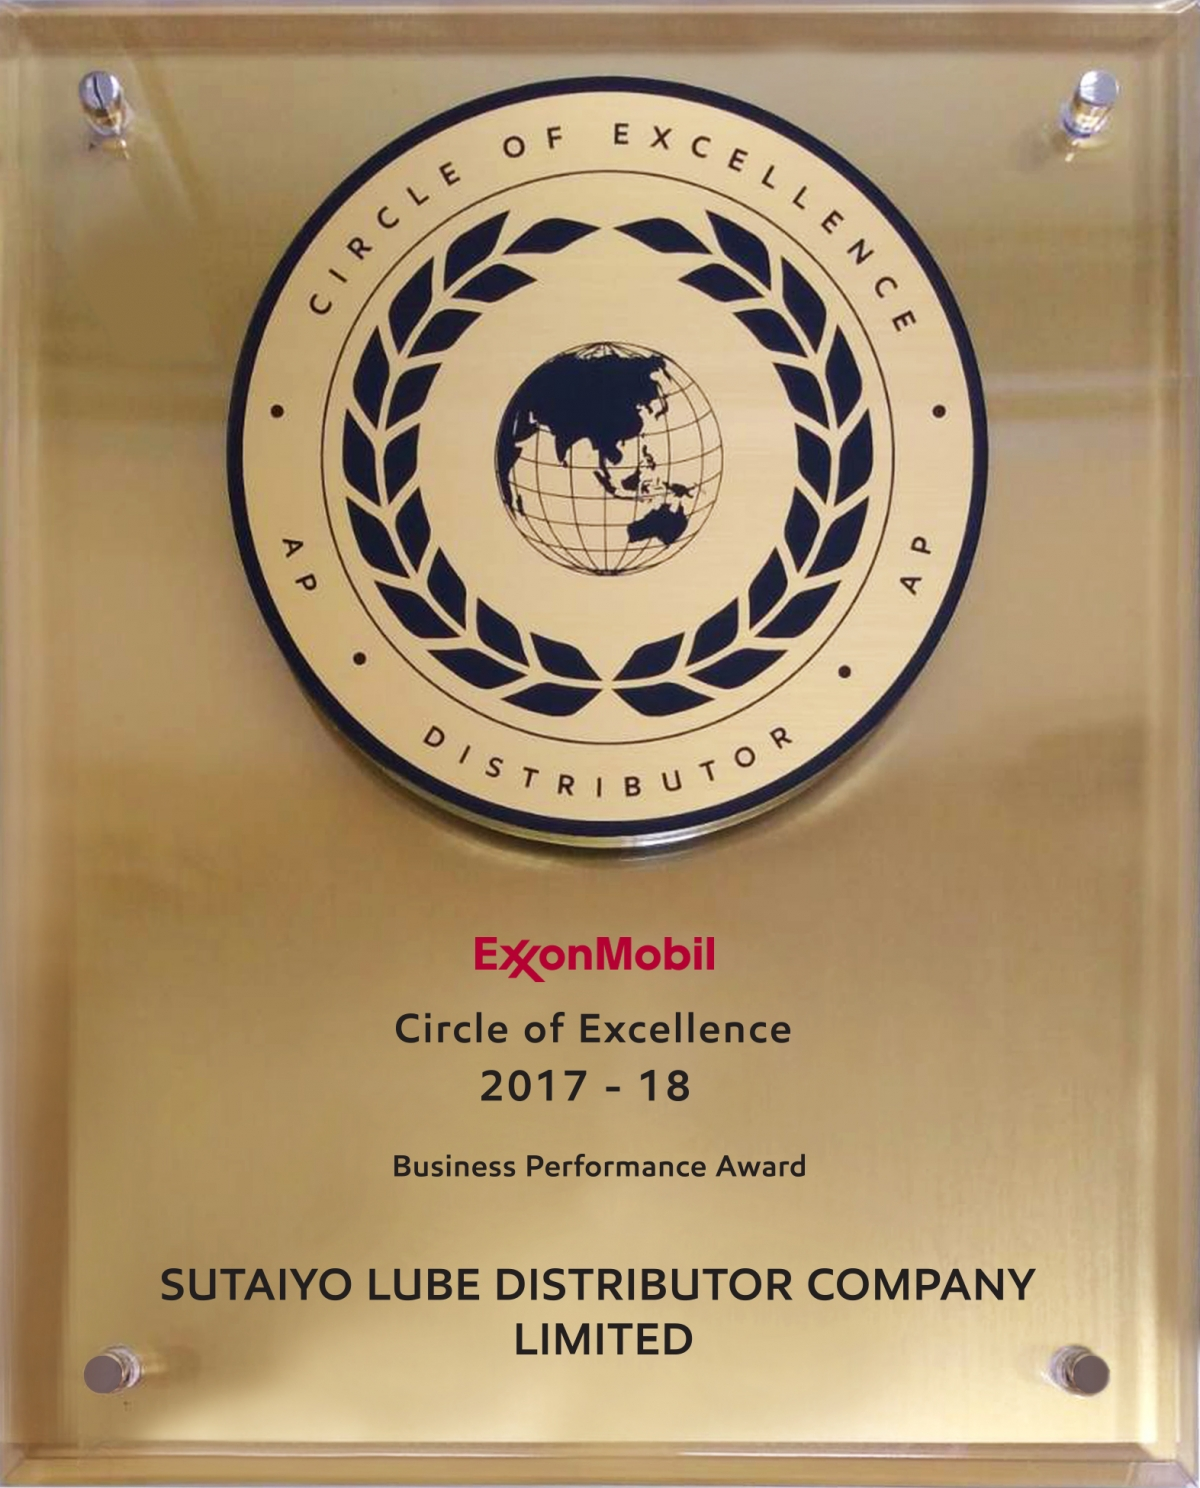 Circle of Excellence Award : Gold Winner 2017-18 Business Performance